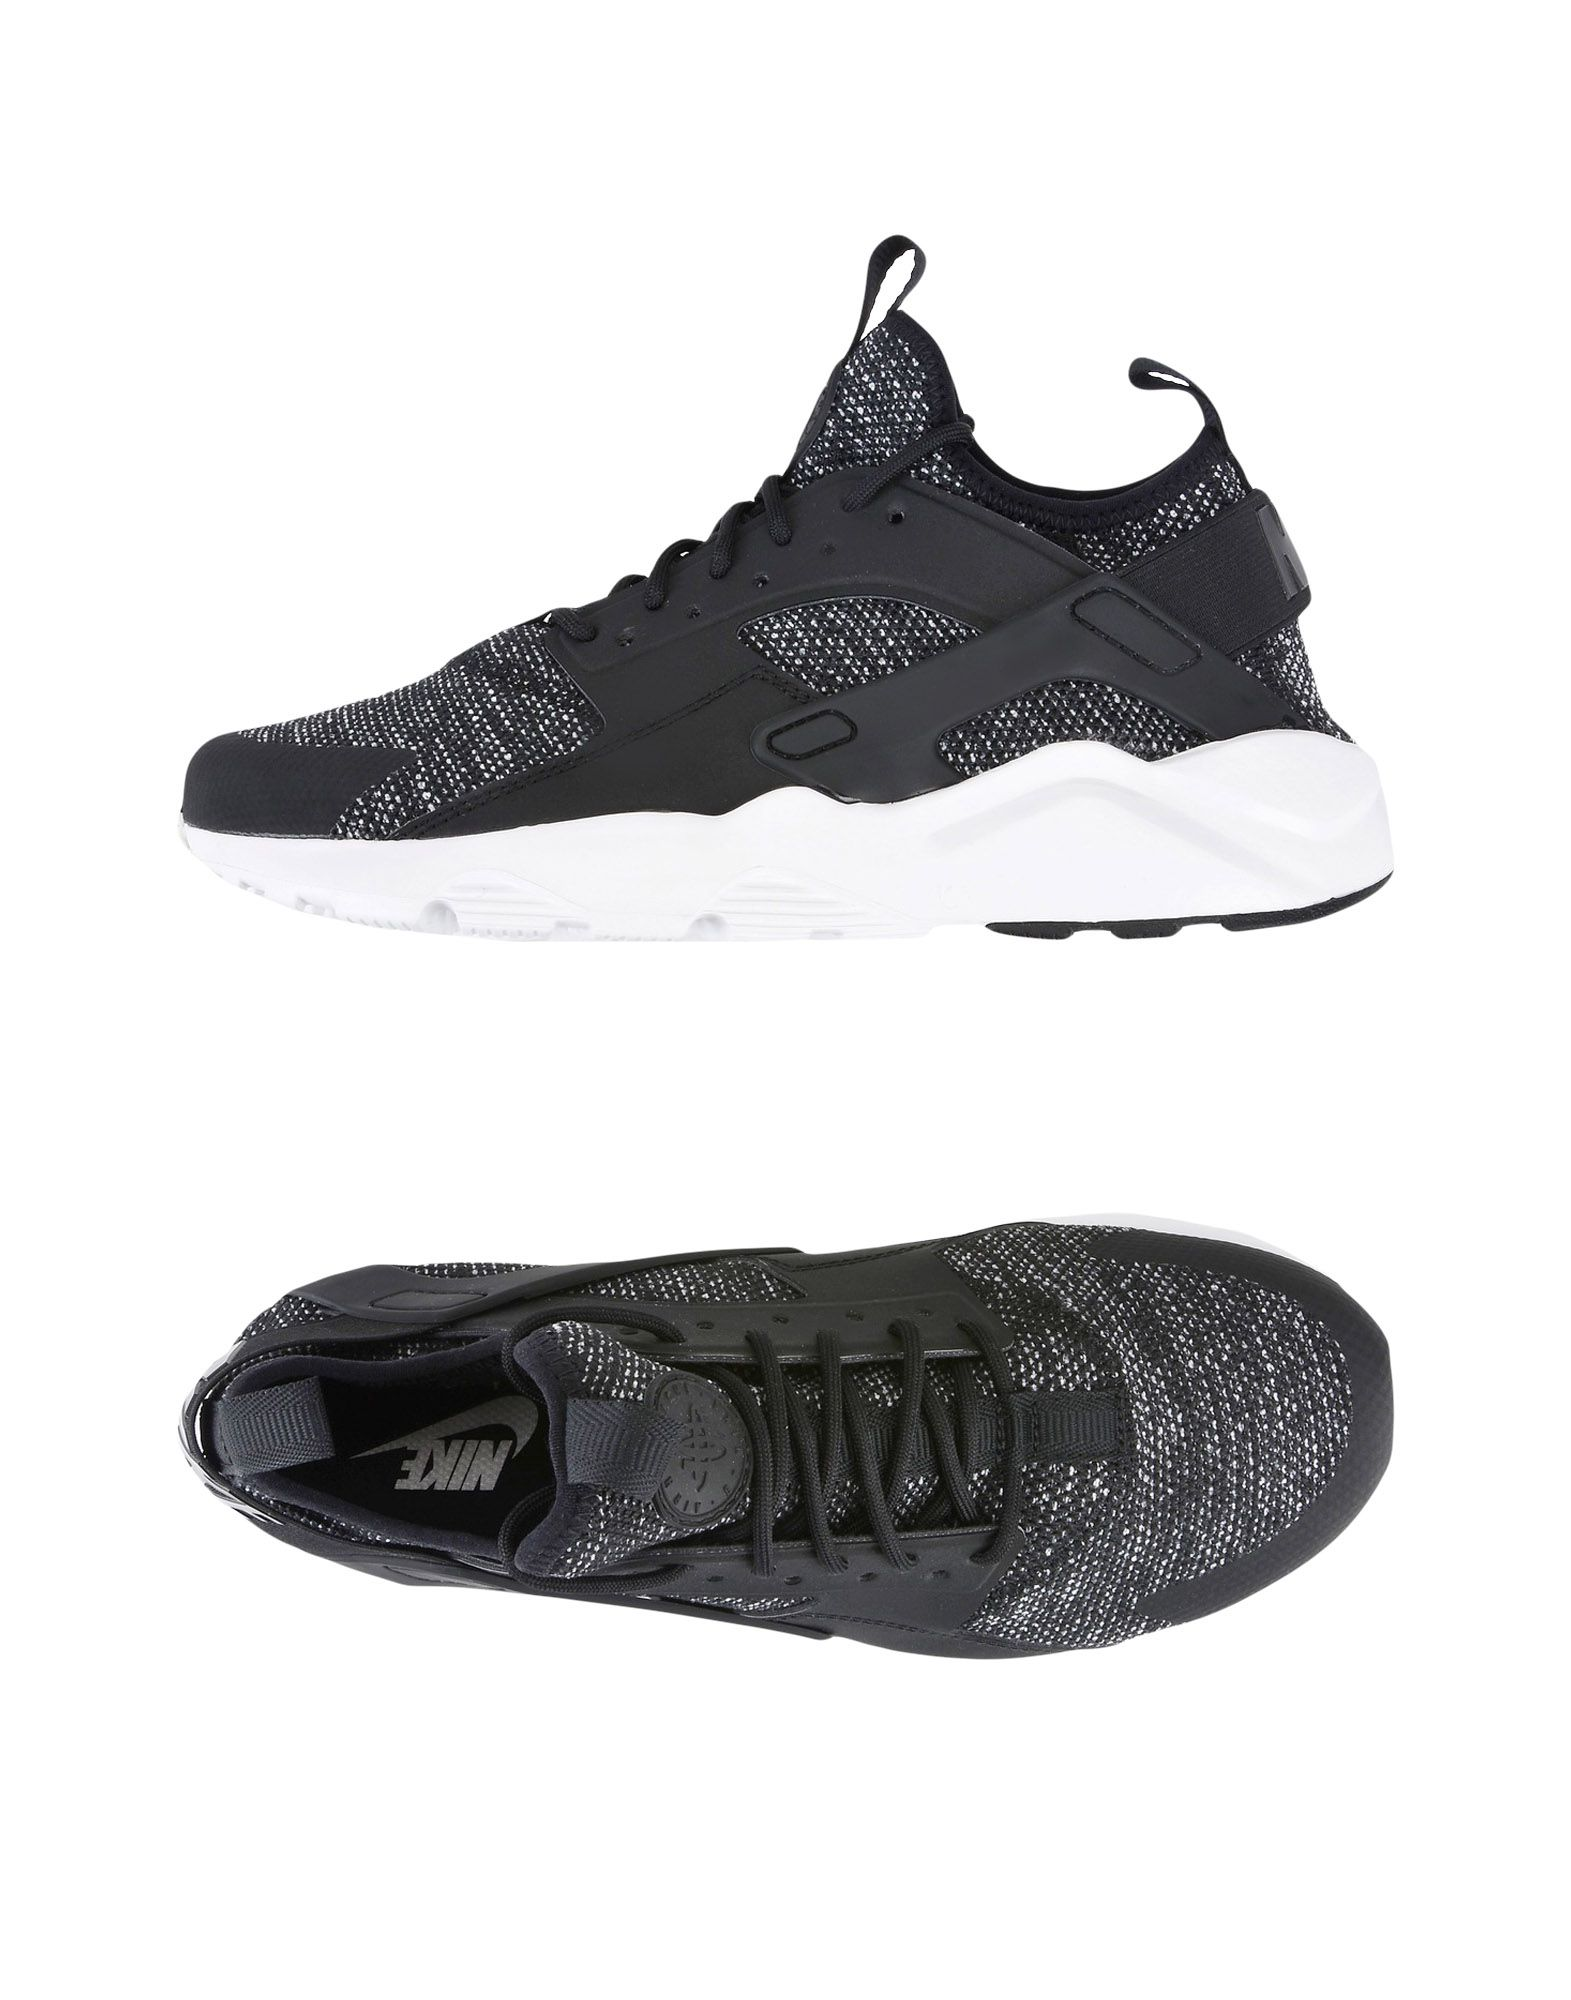 Sneakers Nike  Air Huarache Run Ultra Breathe - Donna - Acquista online su